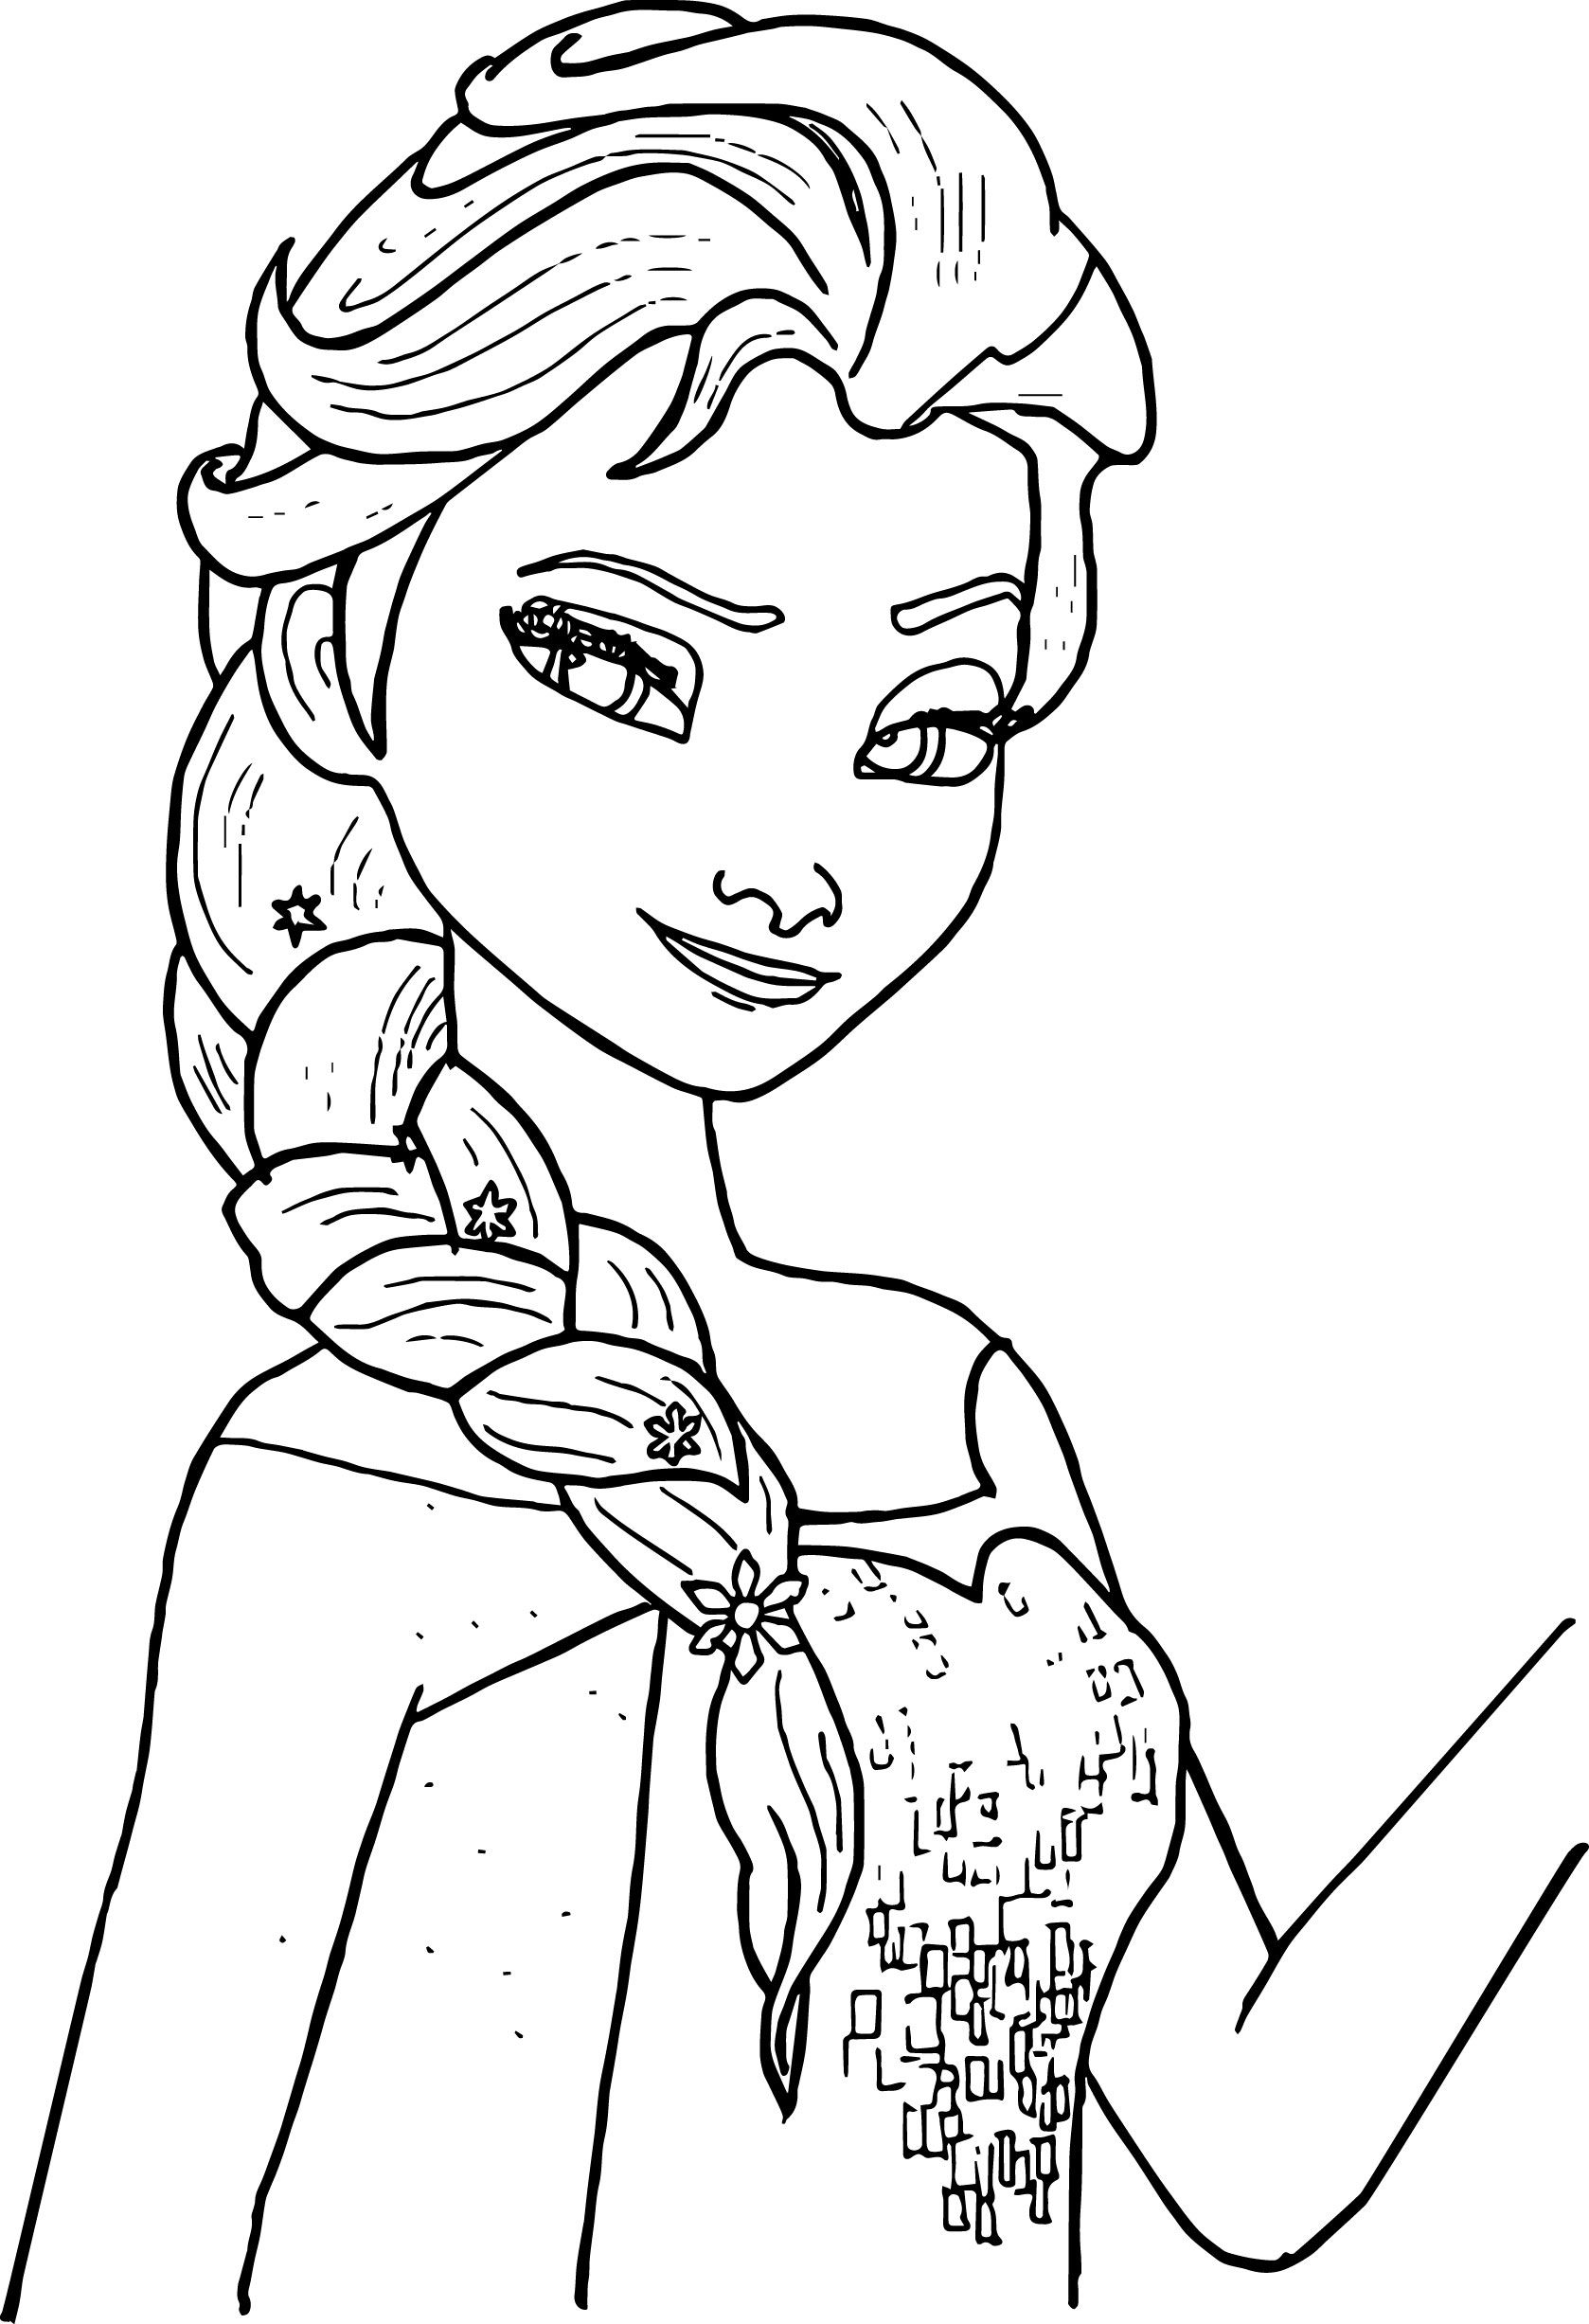 Elsa Black And White Coloring Pages Coloring Pages Allow Kids To Accompany Their Favorit Frozen Coloring Pages Disney Coloring Pages Princess Coloring Pages